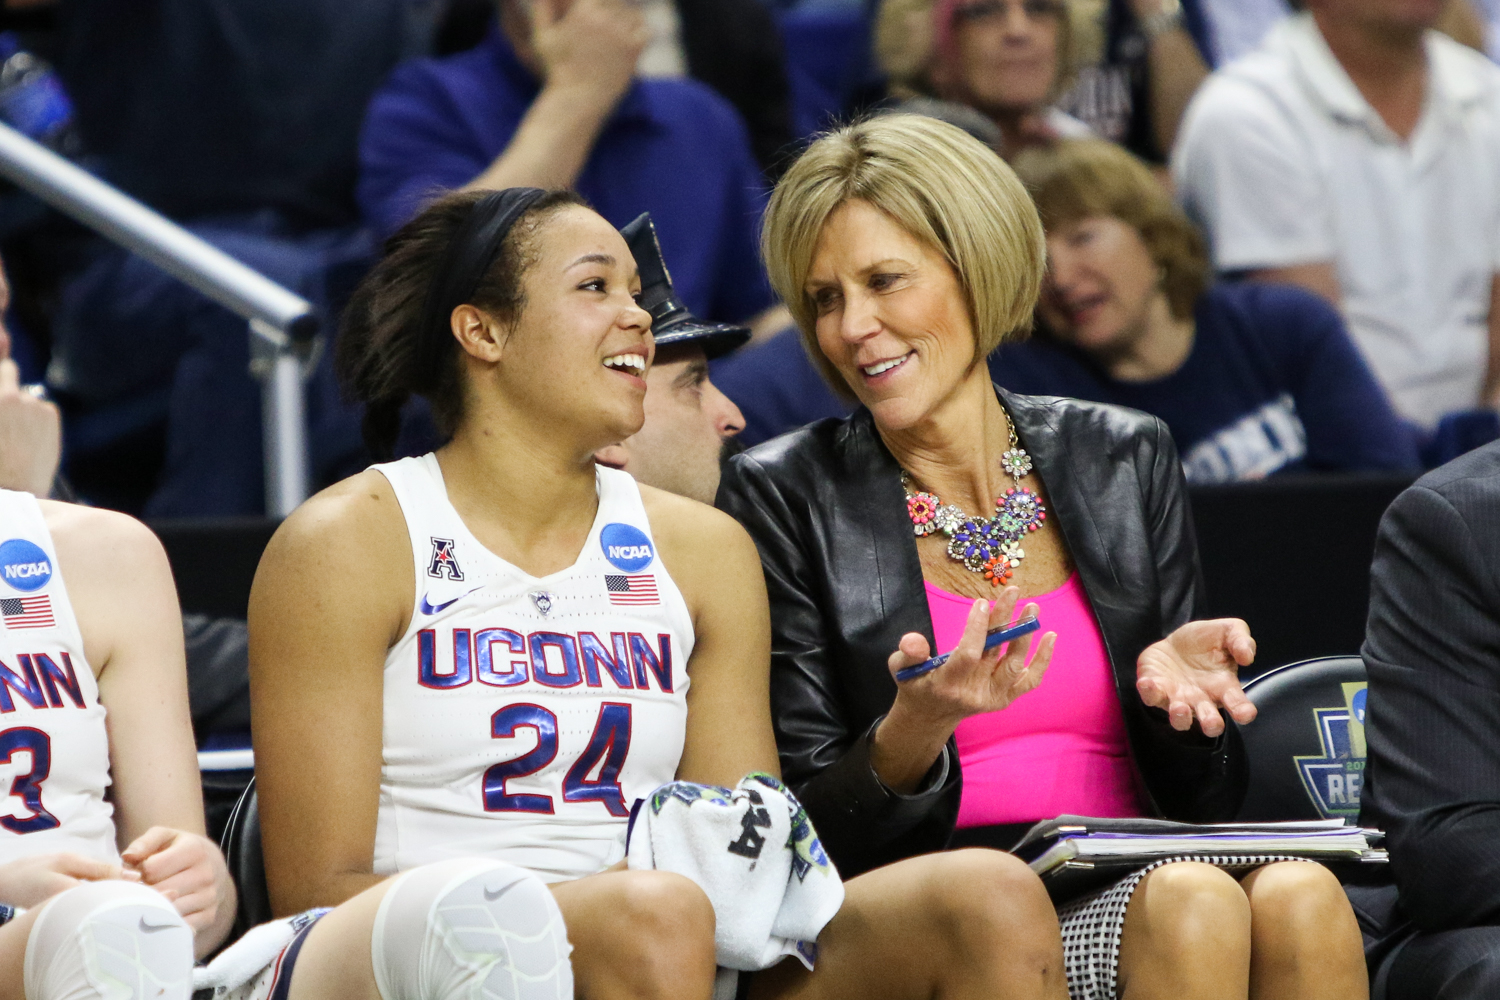 UConn's Napheesa Collier and assistant coach Chris Dailey share a laugh in the fourth quarter of the Huskies' win.